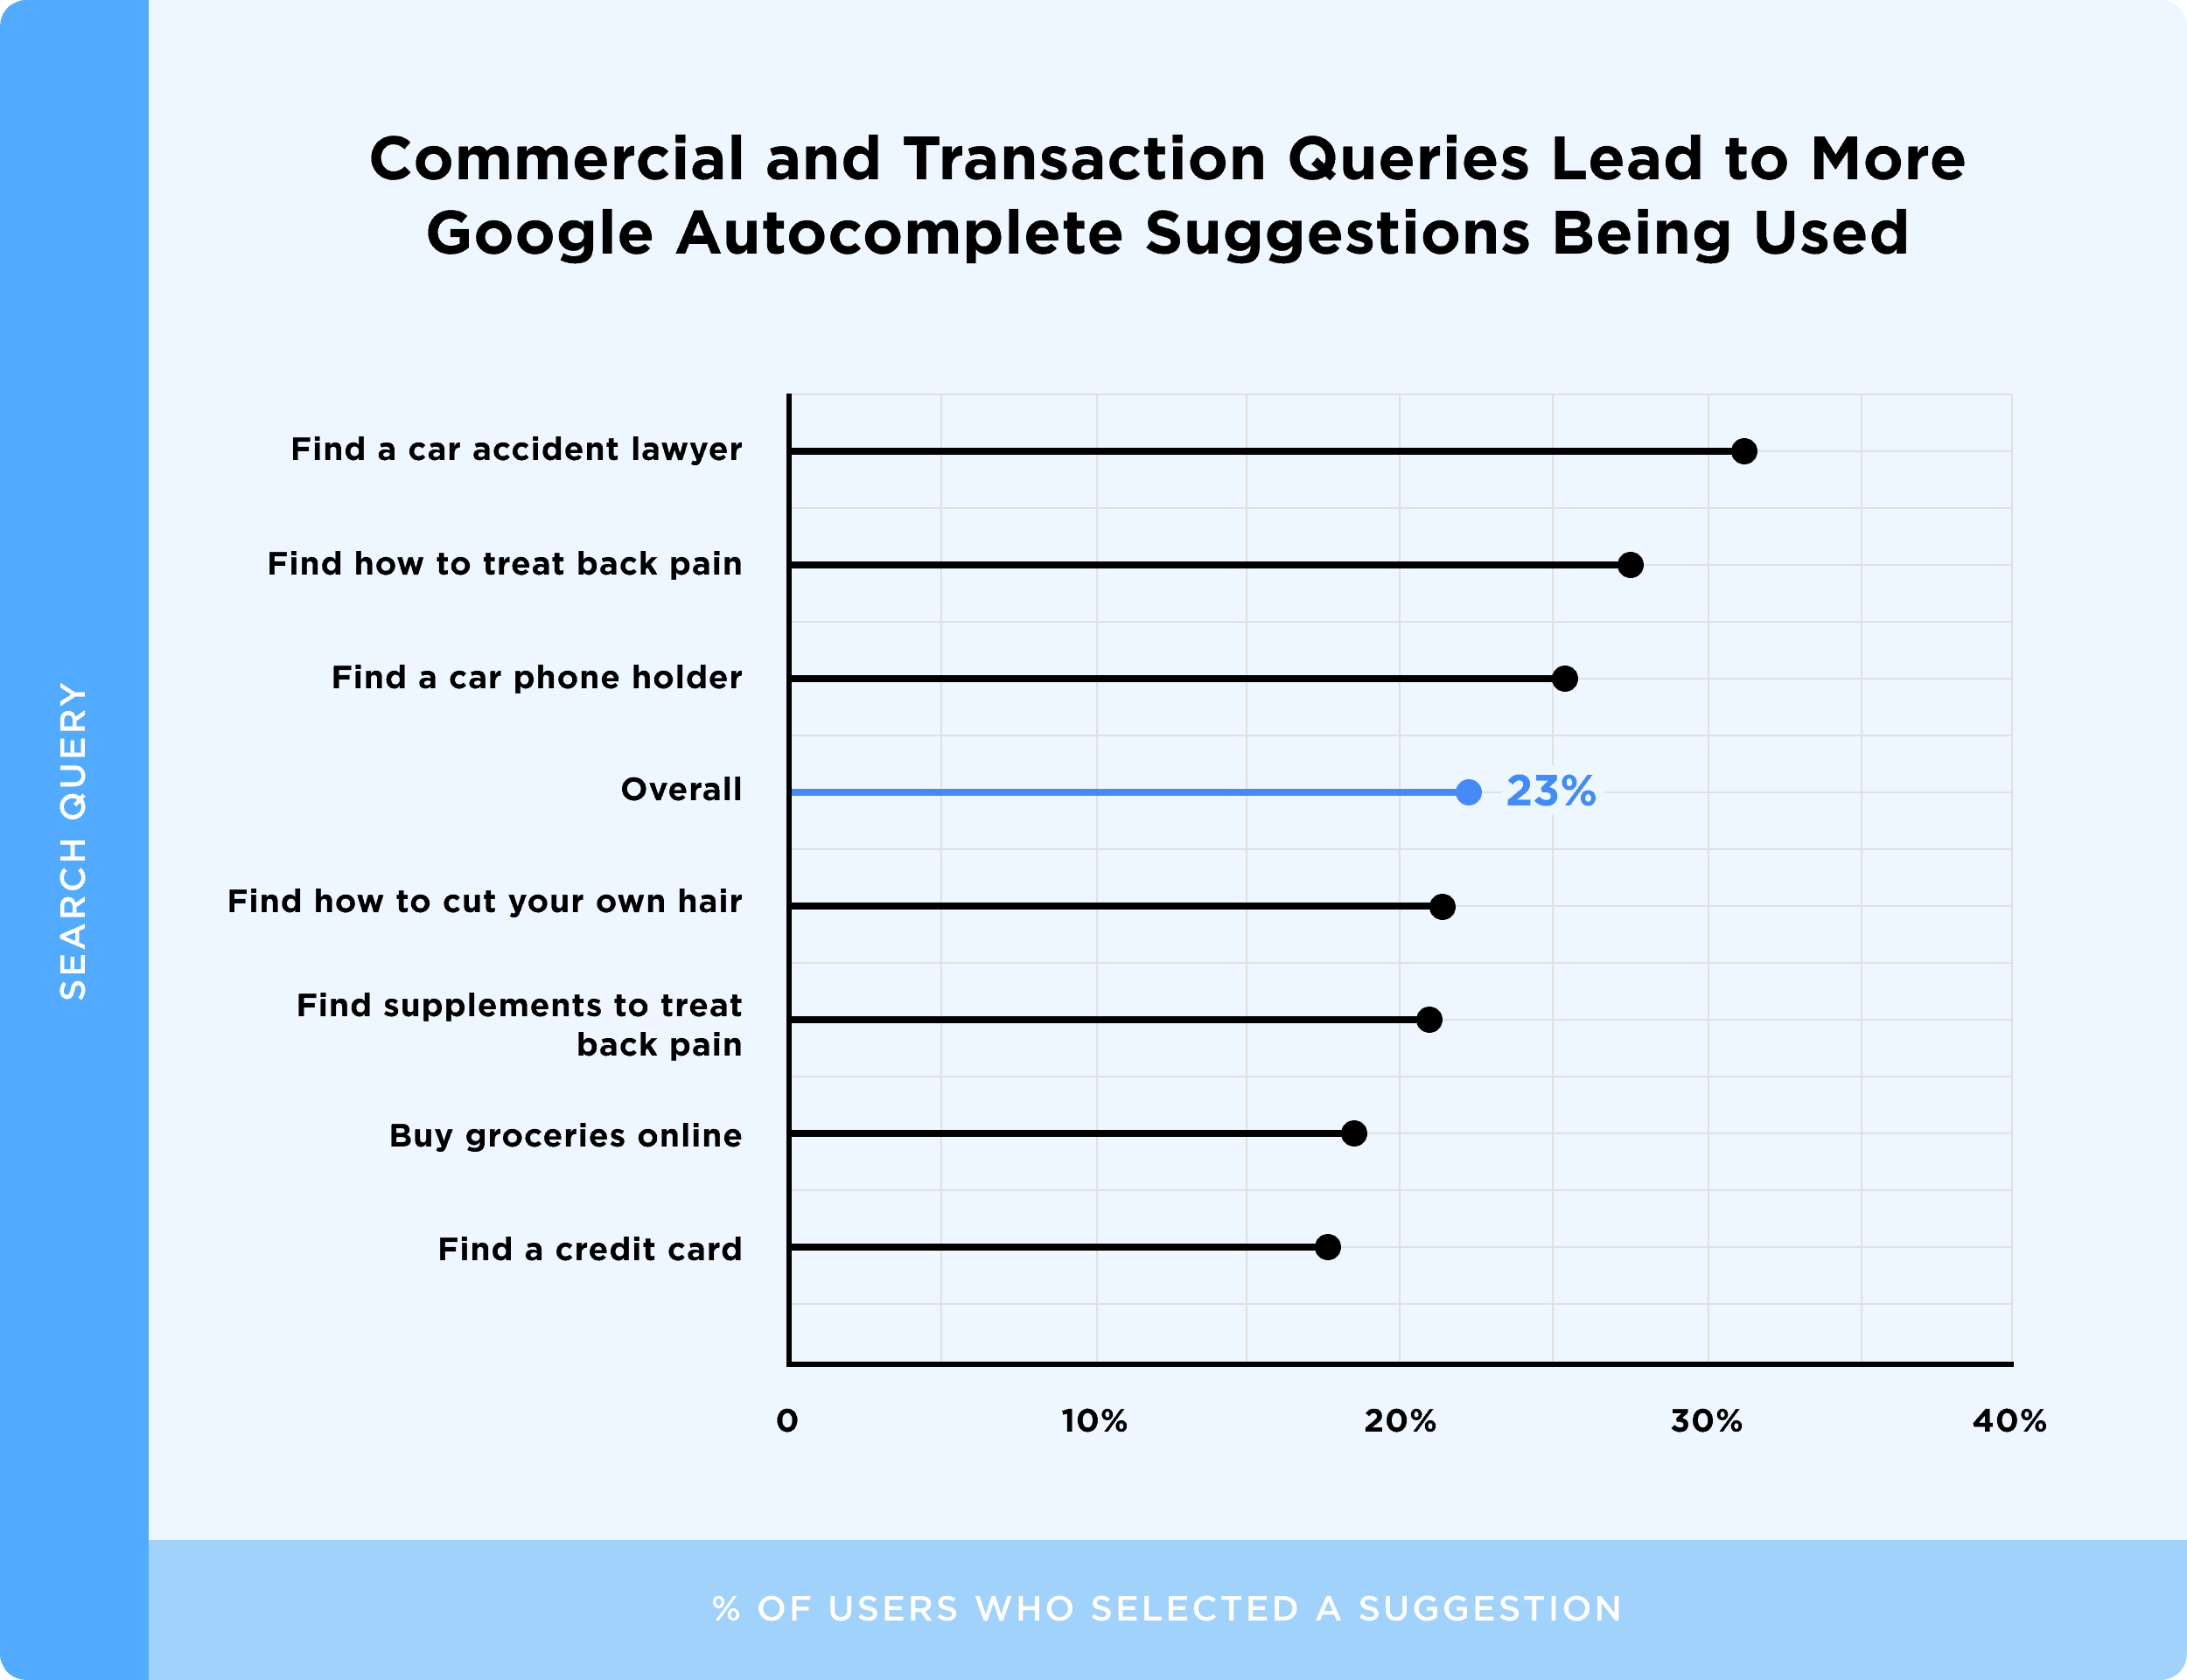 Commercial and Transaction Queries Lead to More Google Autocomplete Suggestions Being Used